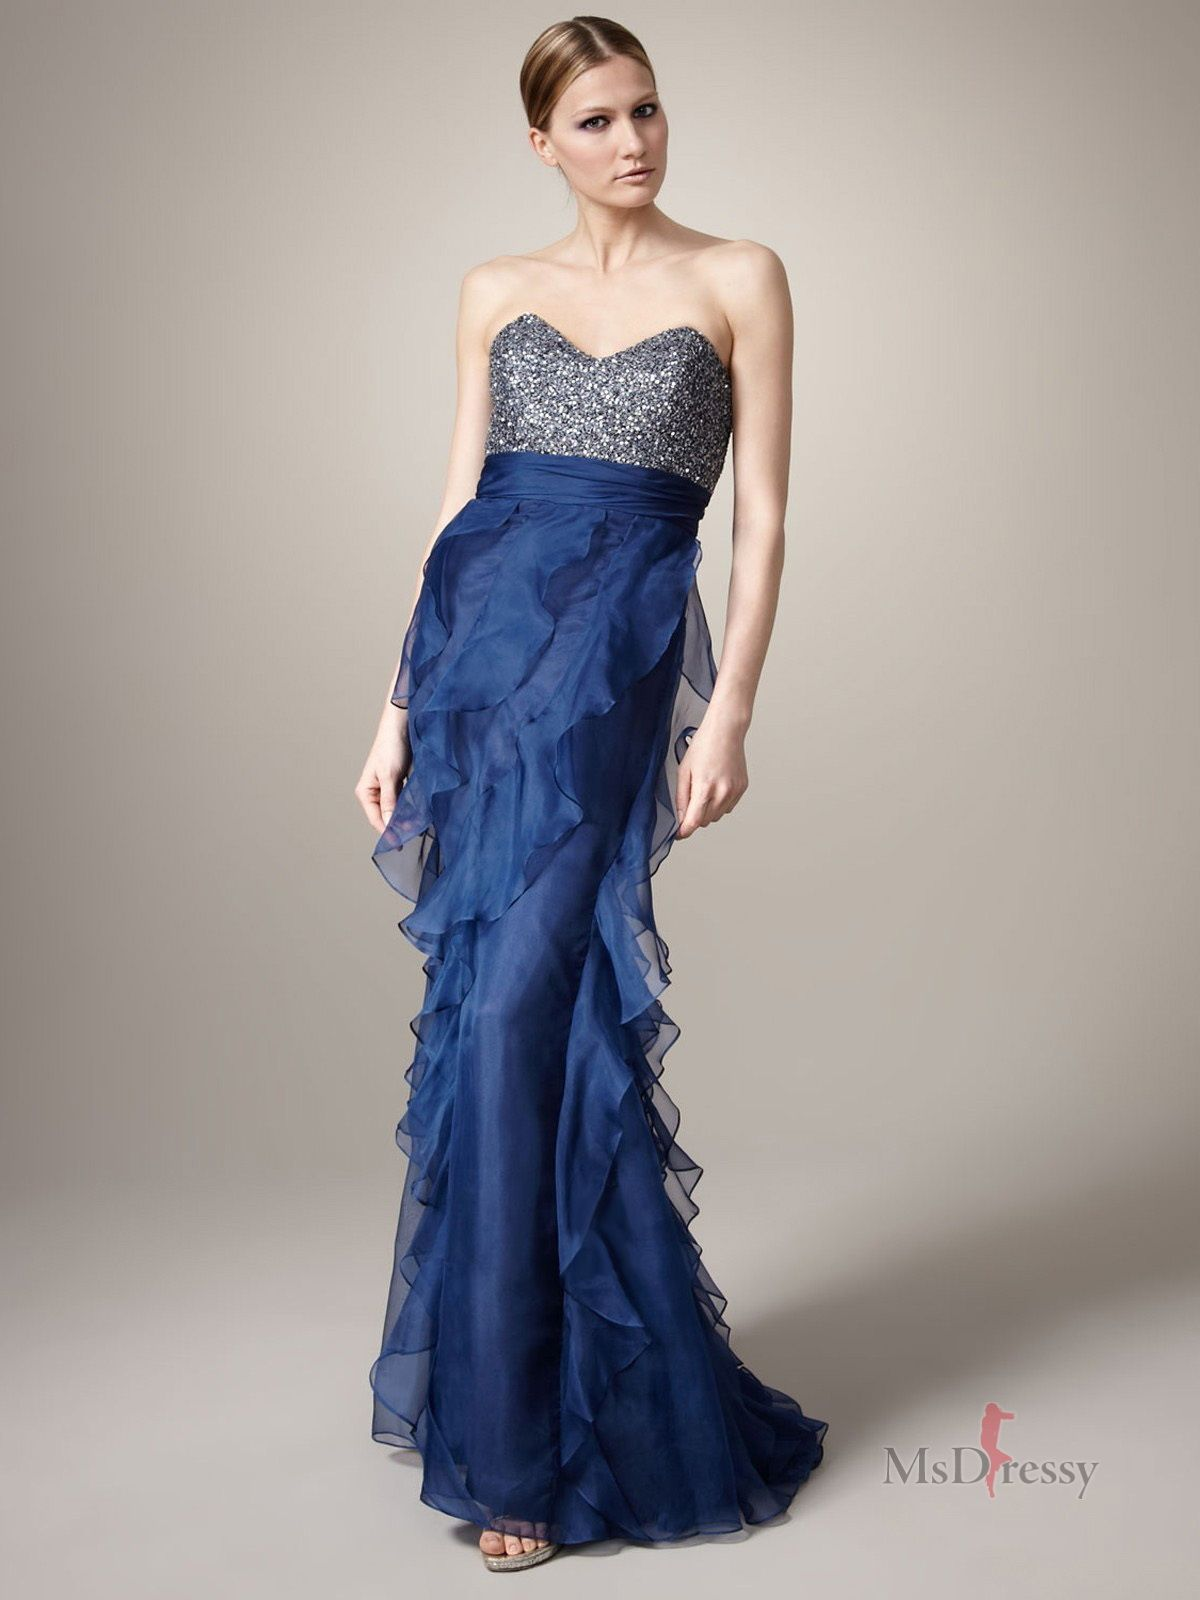 Pretty blue dress vestido coctel pinterest blue dresses night